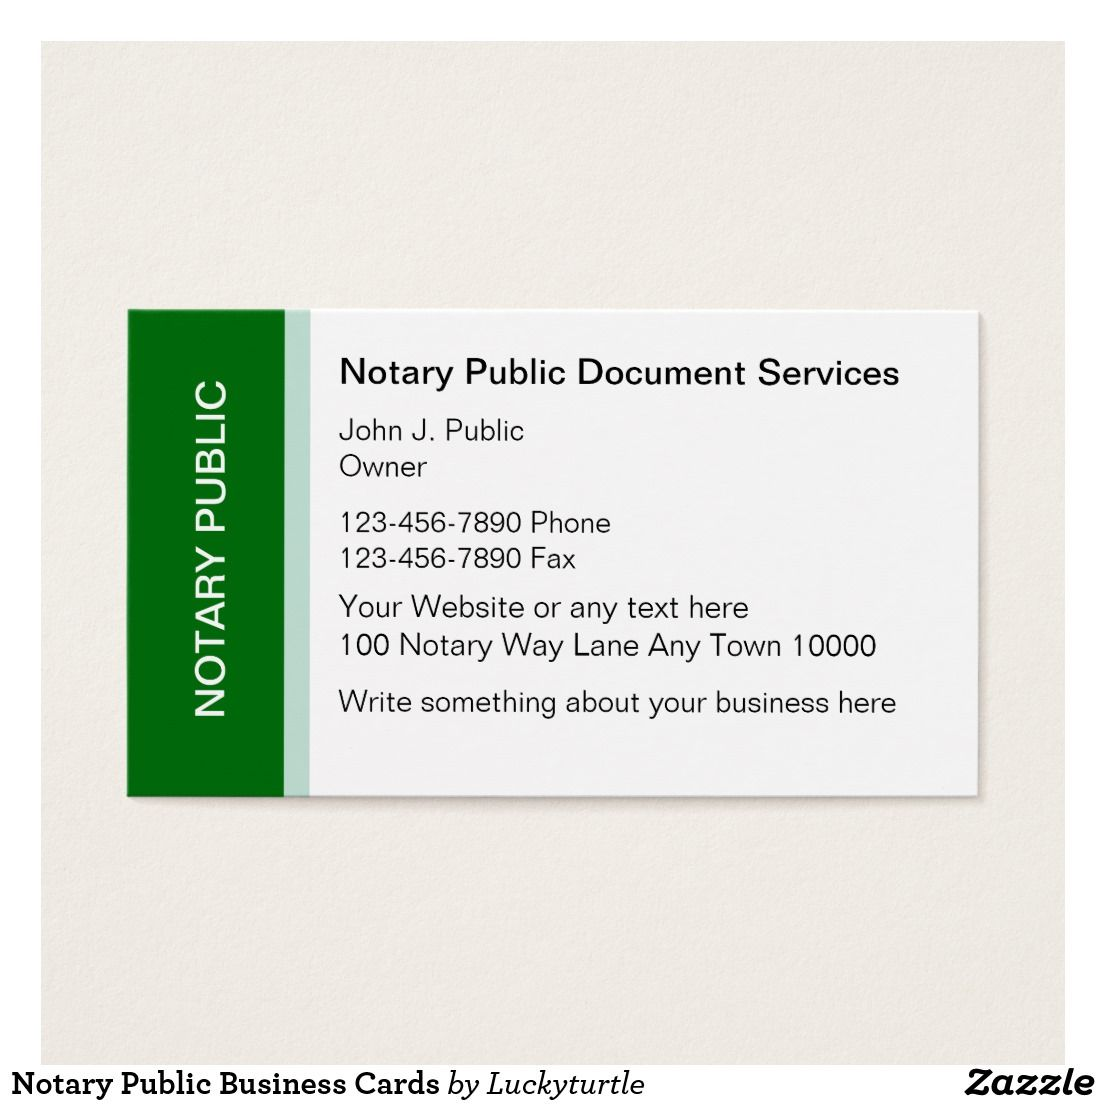 Notary Public Business Cards Zazzle Com Notary Public Business Notary Public Notary